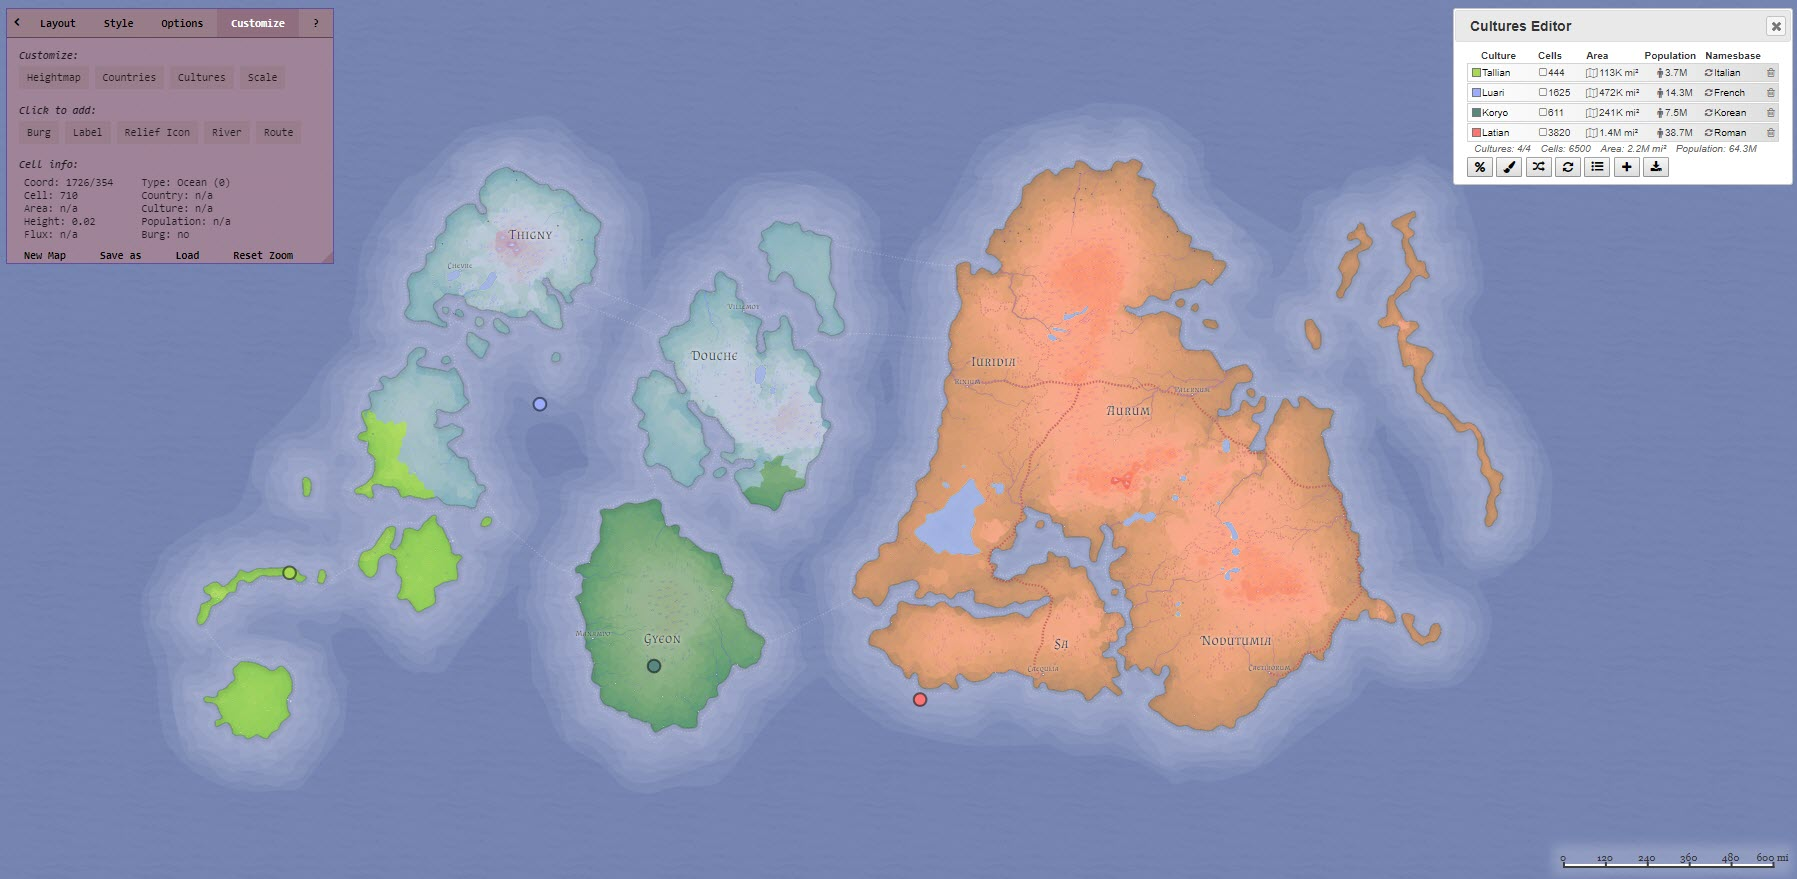 Free Dd World Map Maker.Map Maker Generating A Fantasy World Atlas